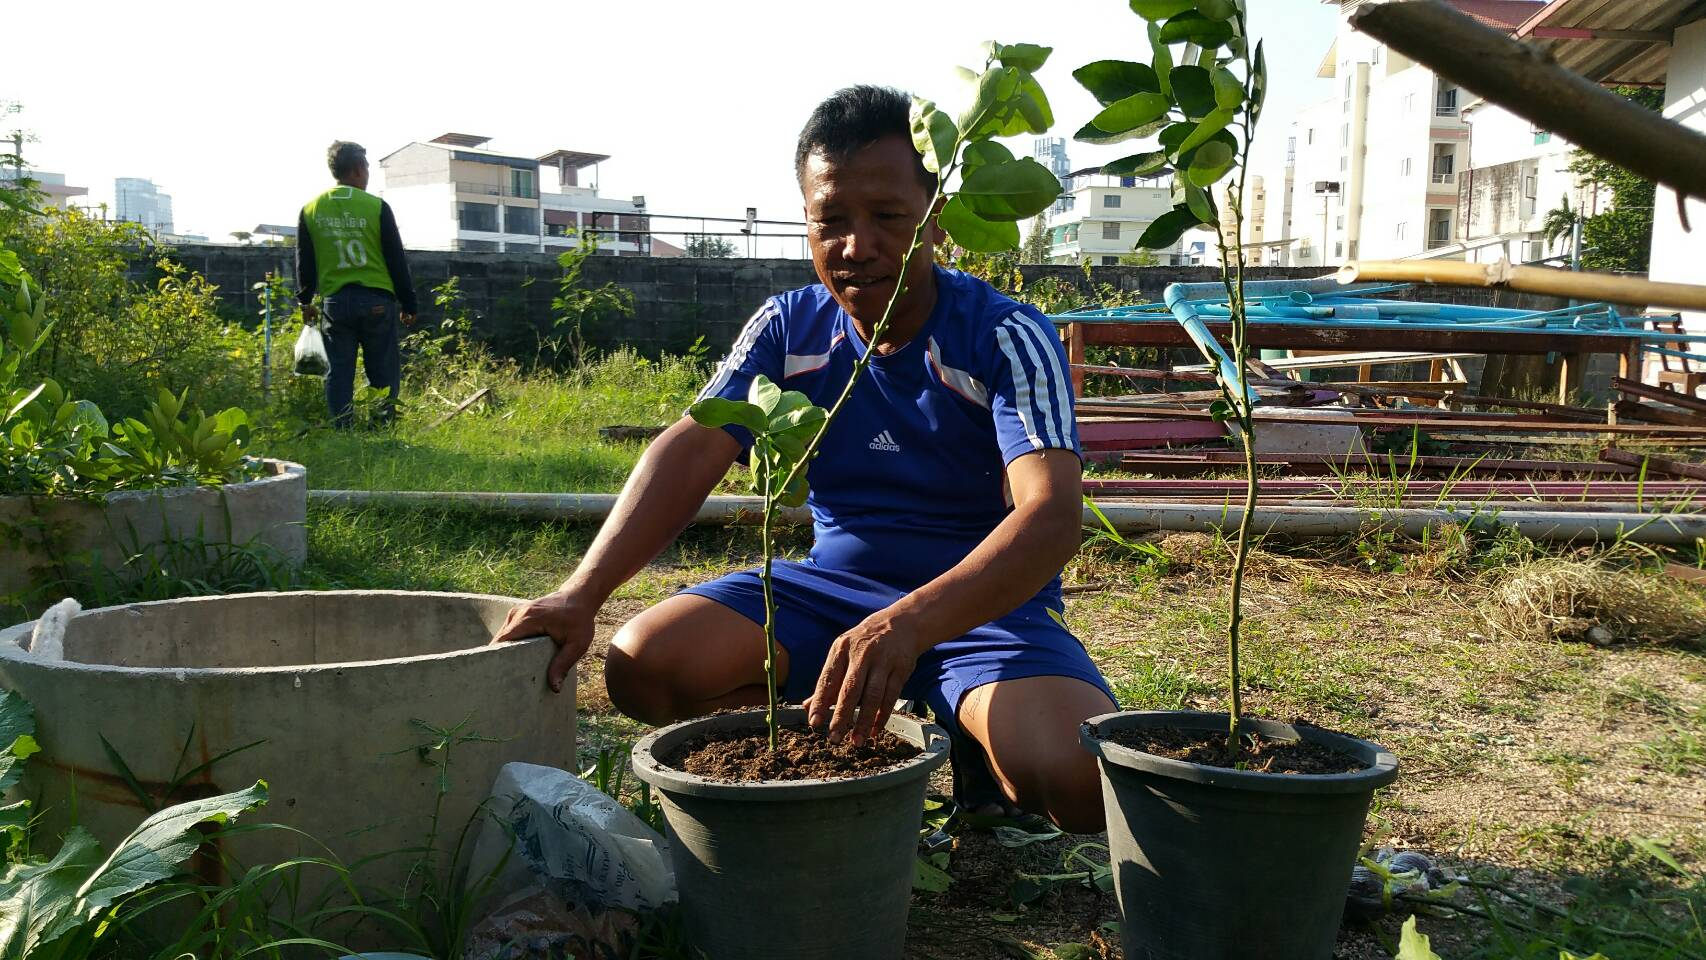 Wanaorn Kaewiset, advisor to the Arunothai Volunteer Club, and a group of police volunteers living in Pattaya's Arunothai Community, have planted vegetables, including morning glory, lime, chili peppers, papaya and others, behind a community center they built.